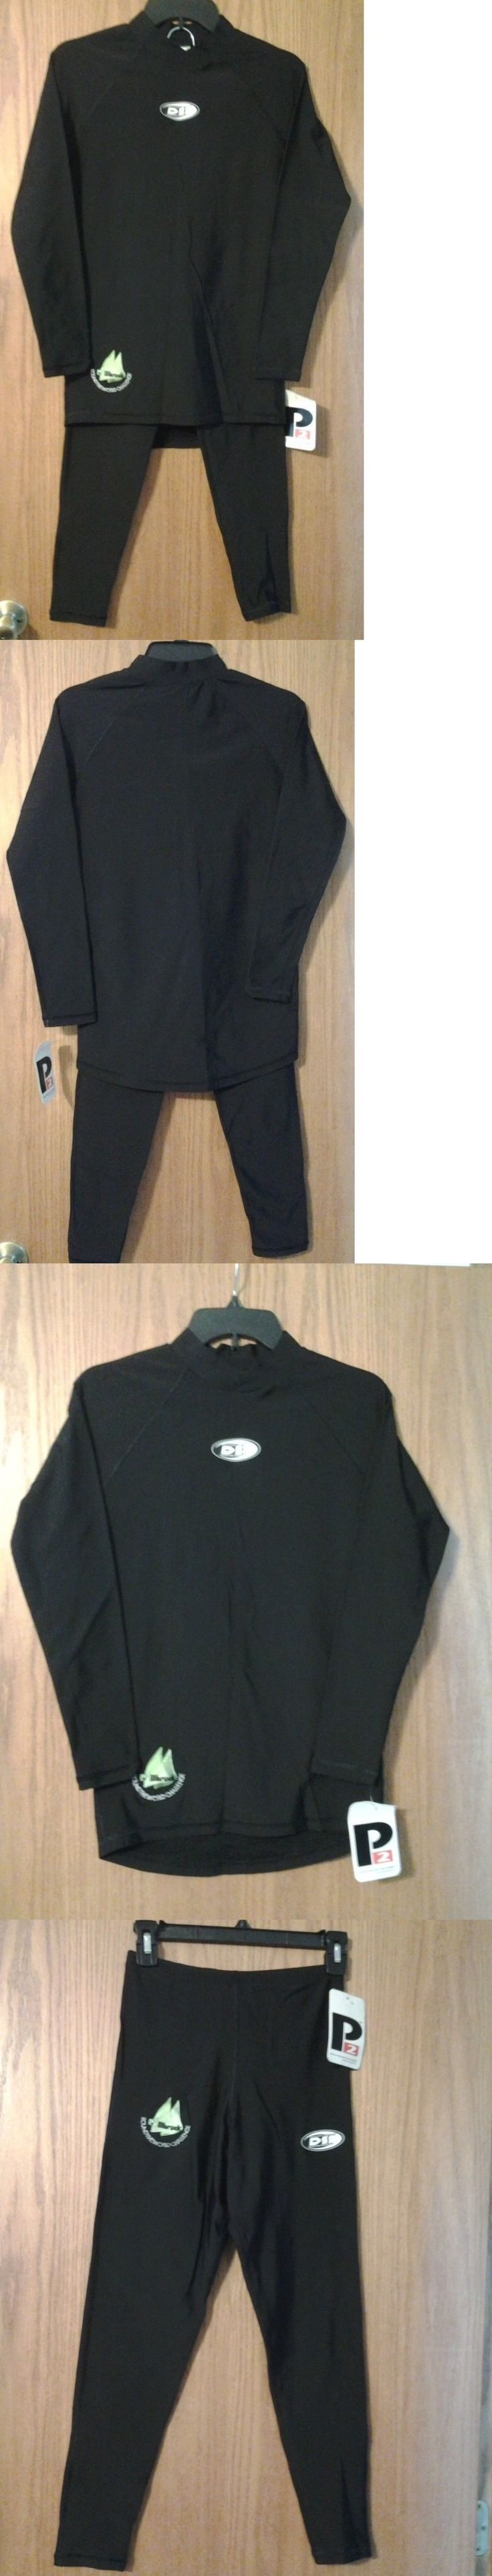 Triathlon 2918: Desota Sport Dss P2 Two Piece Black Triathlon Cycling Outfit Top M Pants L Nwt -> BUY IT NOW ONLY: $45.99 on eBay!